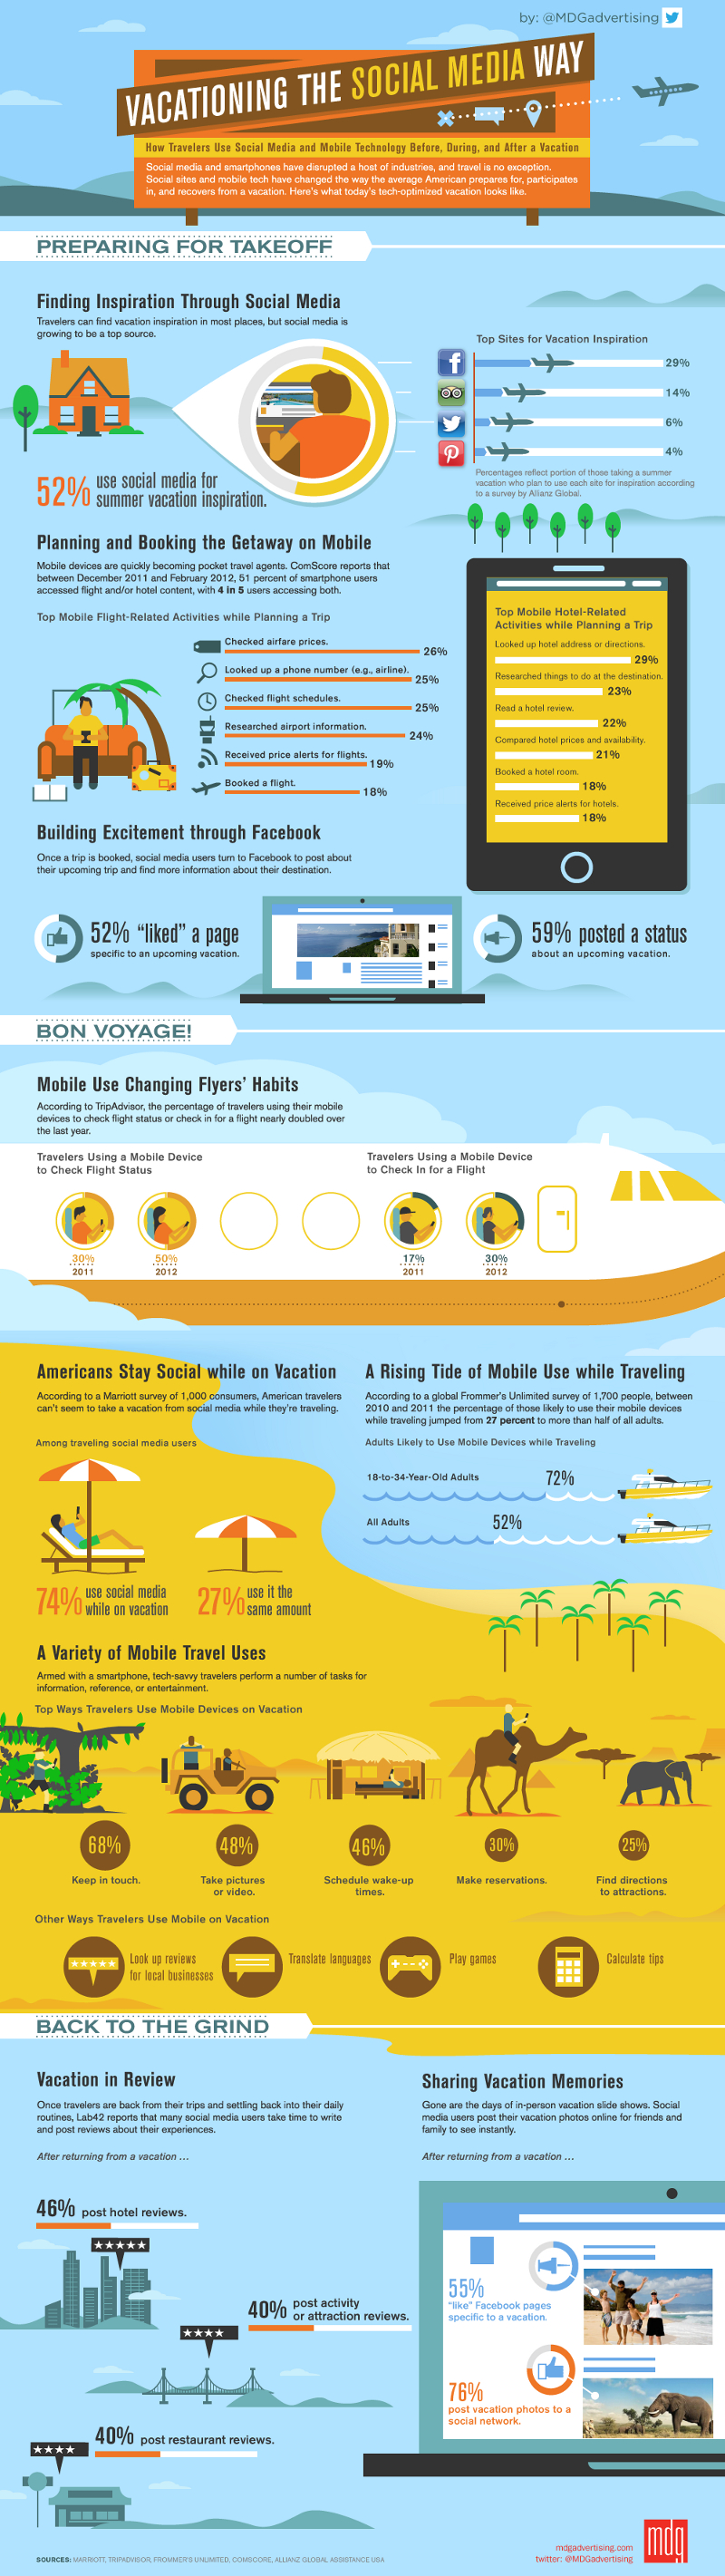 Travel-Industry-Impact-On-Social-Media